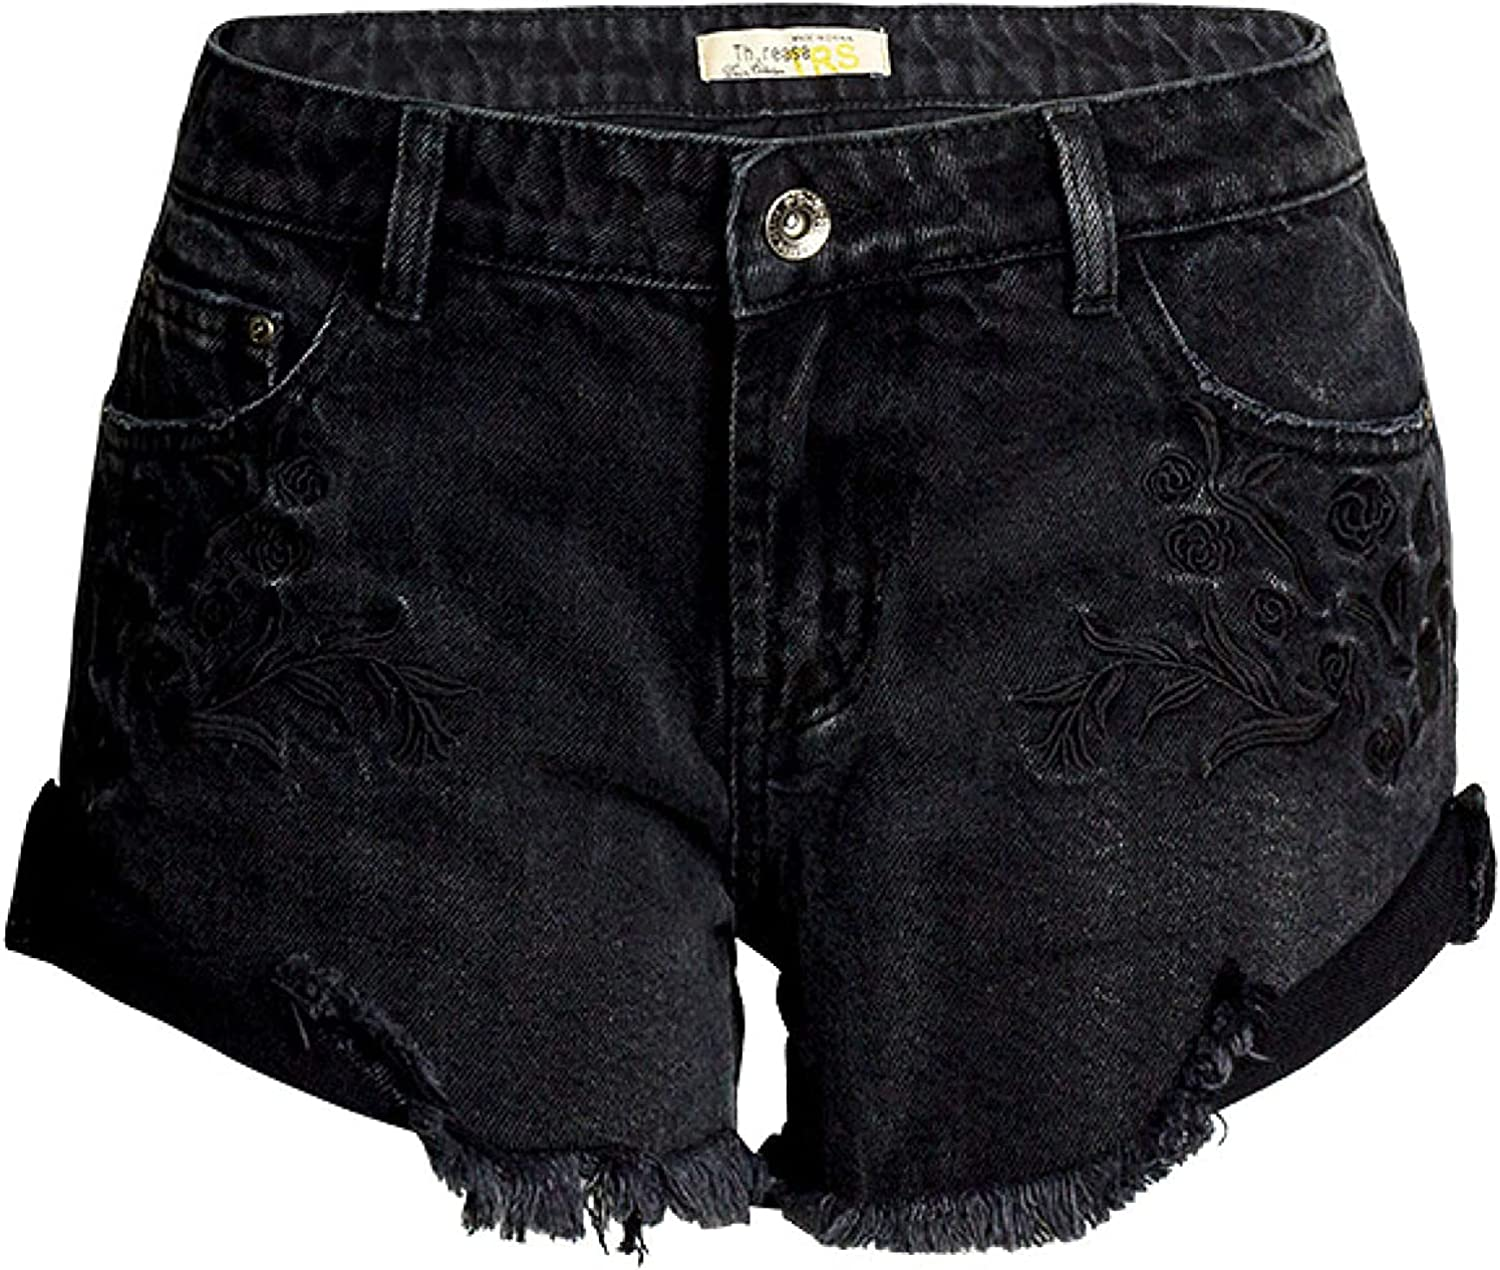 Andrea Spence Women's Denim Shorts Fashion Trend Personality Embroidery Washed Streetwear